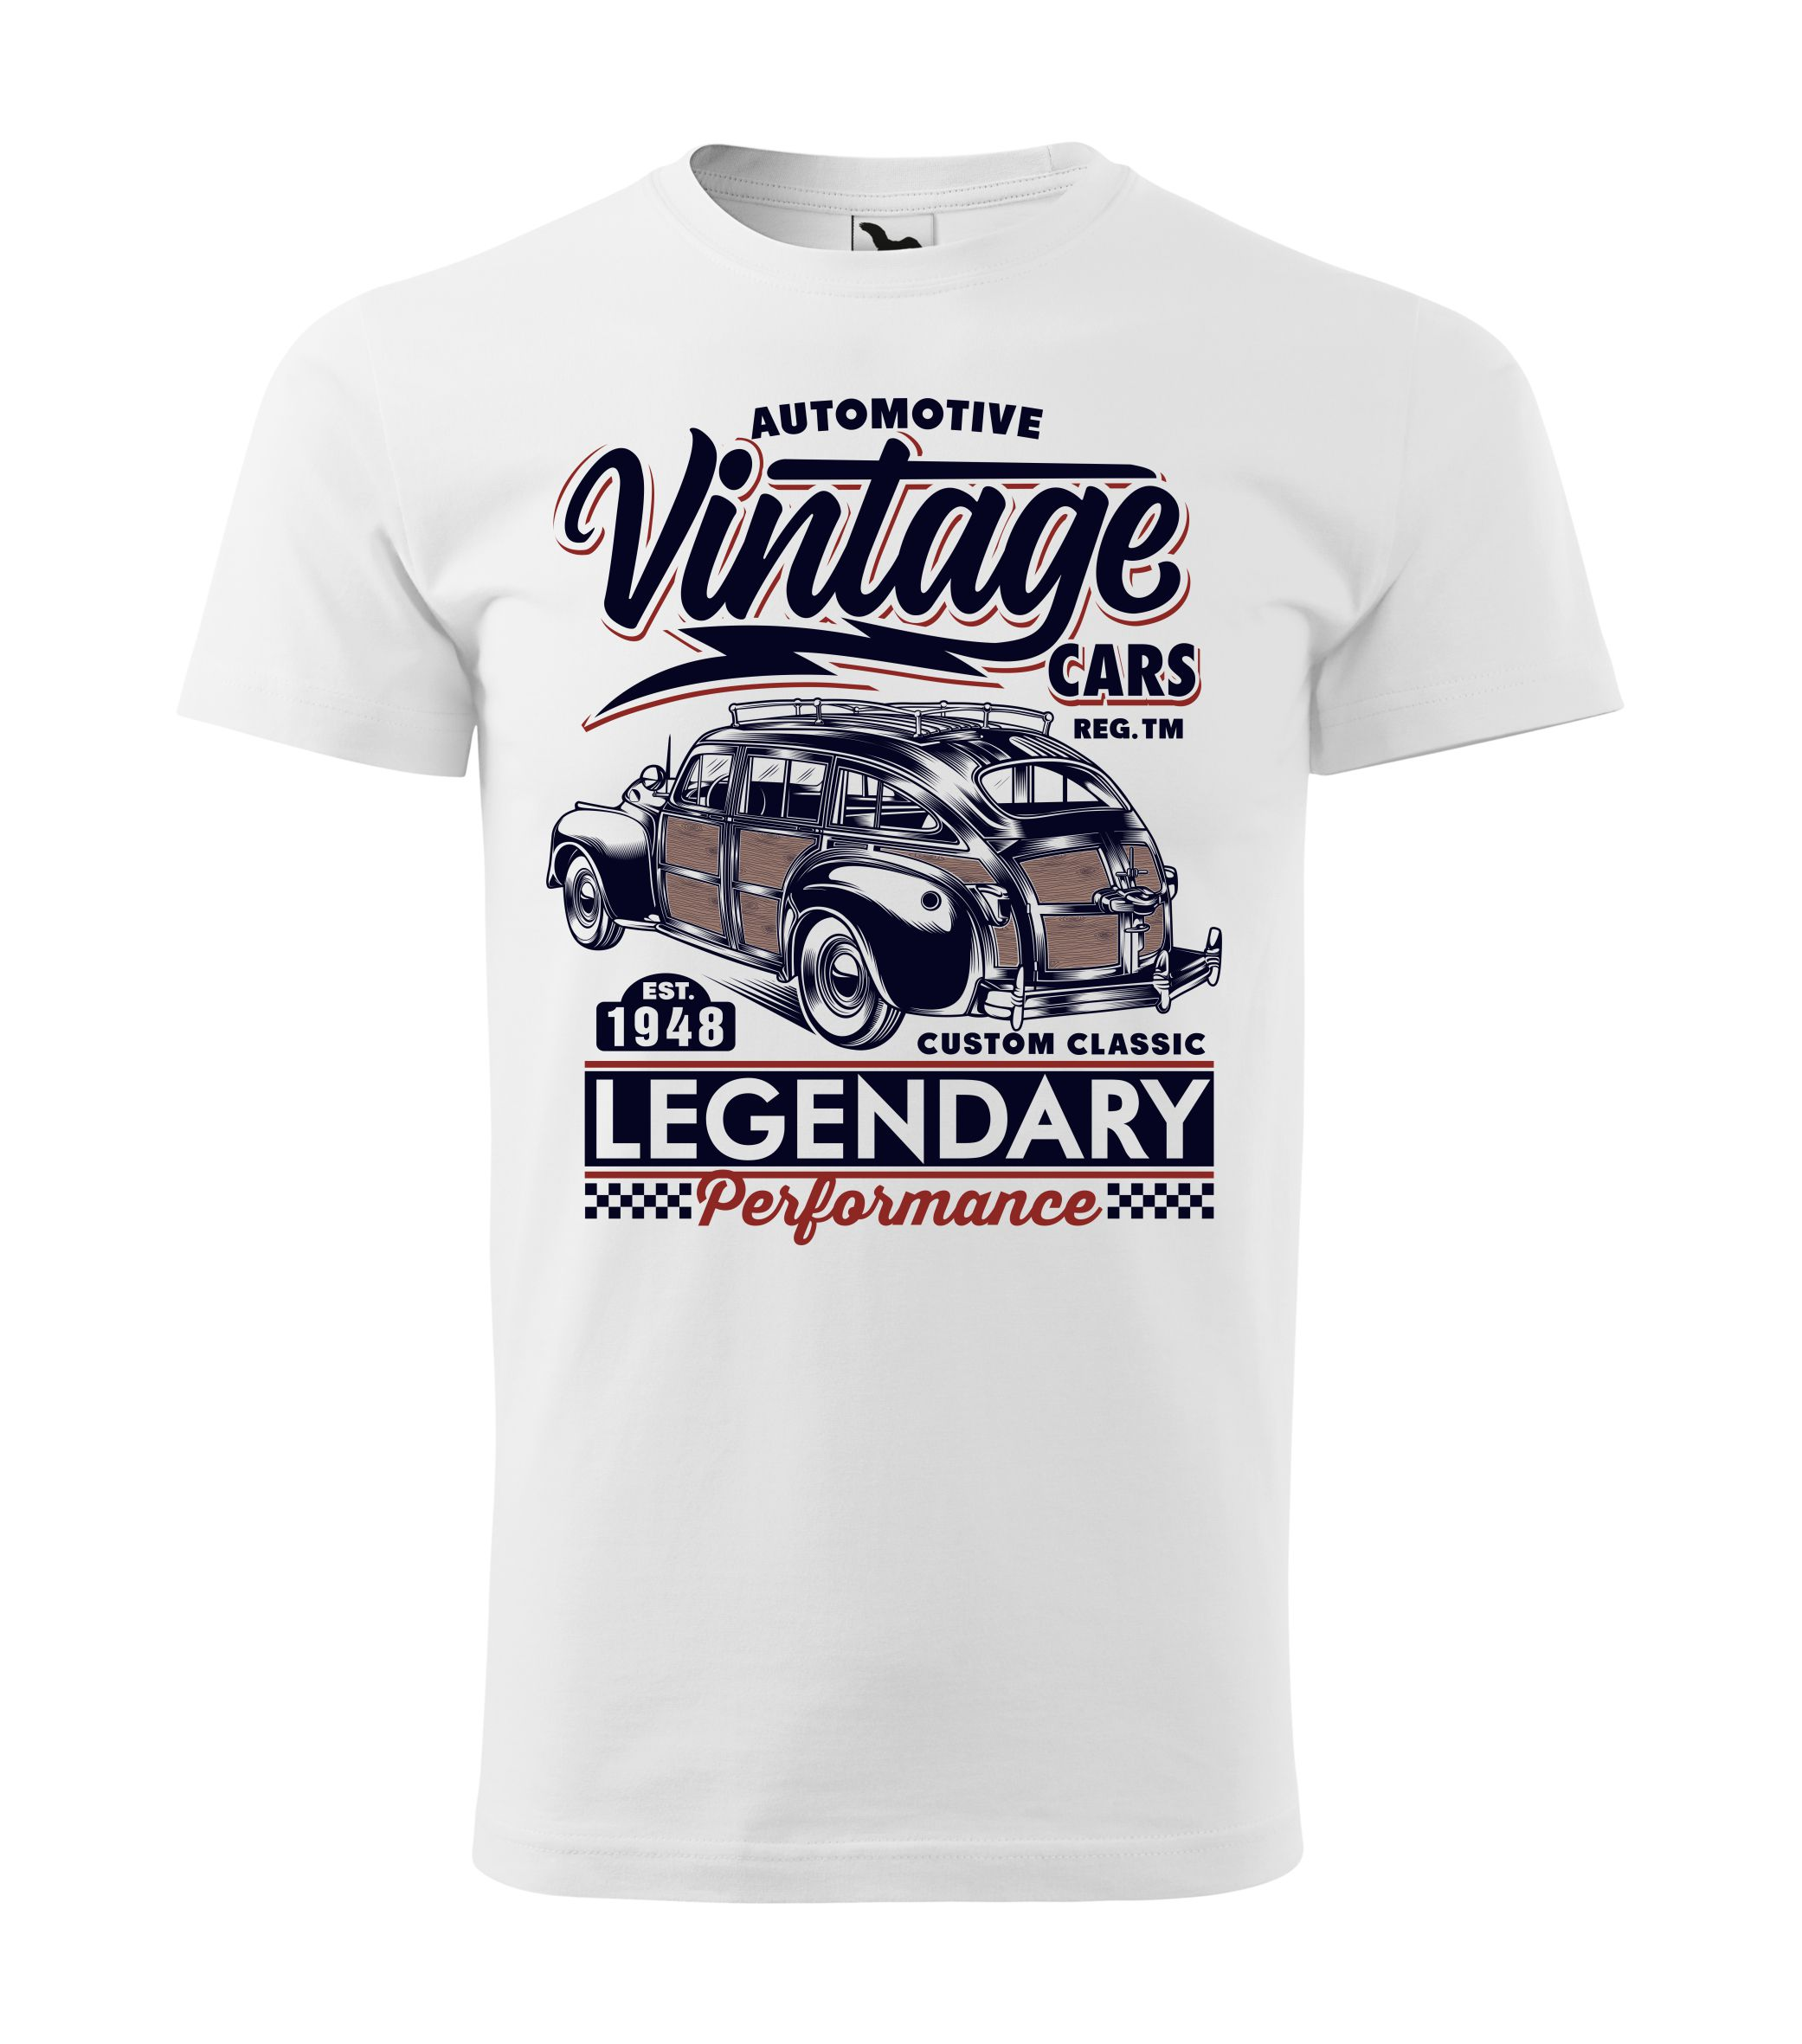 AUTOMOTIVE VINTAGE CARS Classic legendary performance